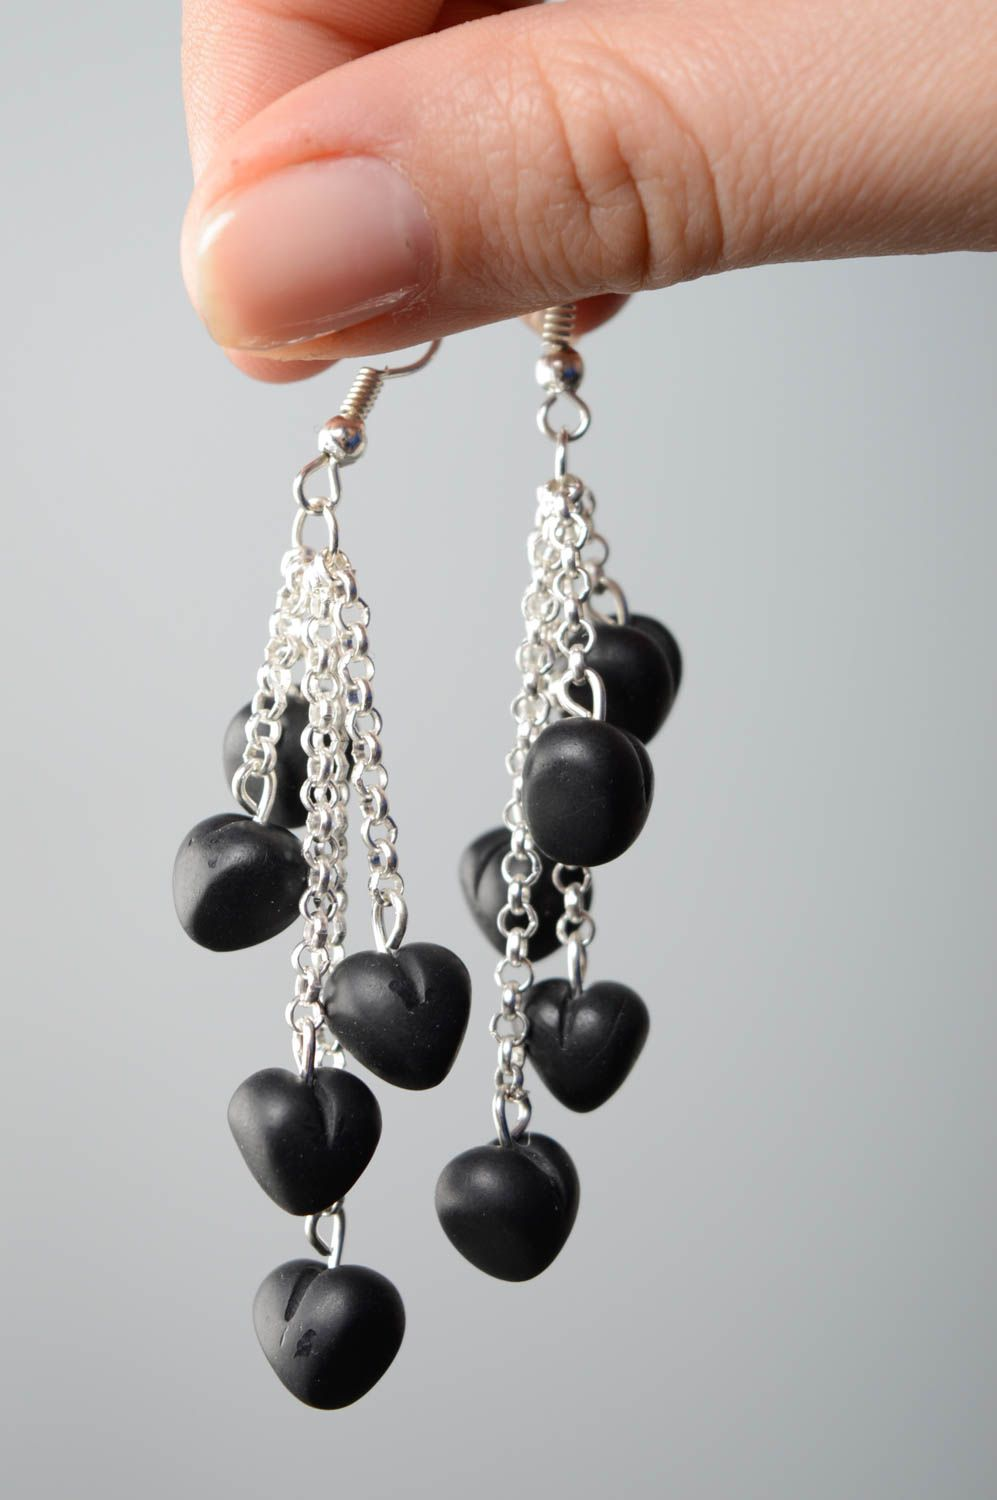 Polymer clay earrings with charms Black Heart photo 4